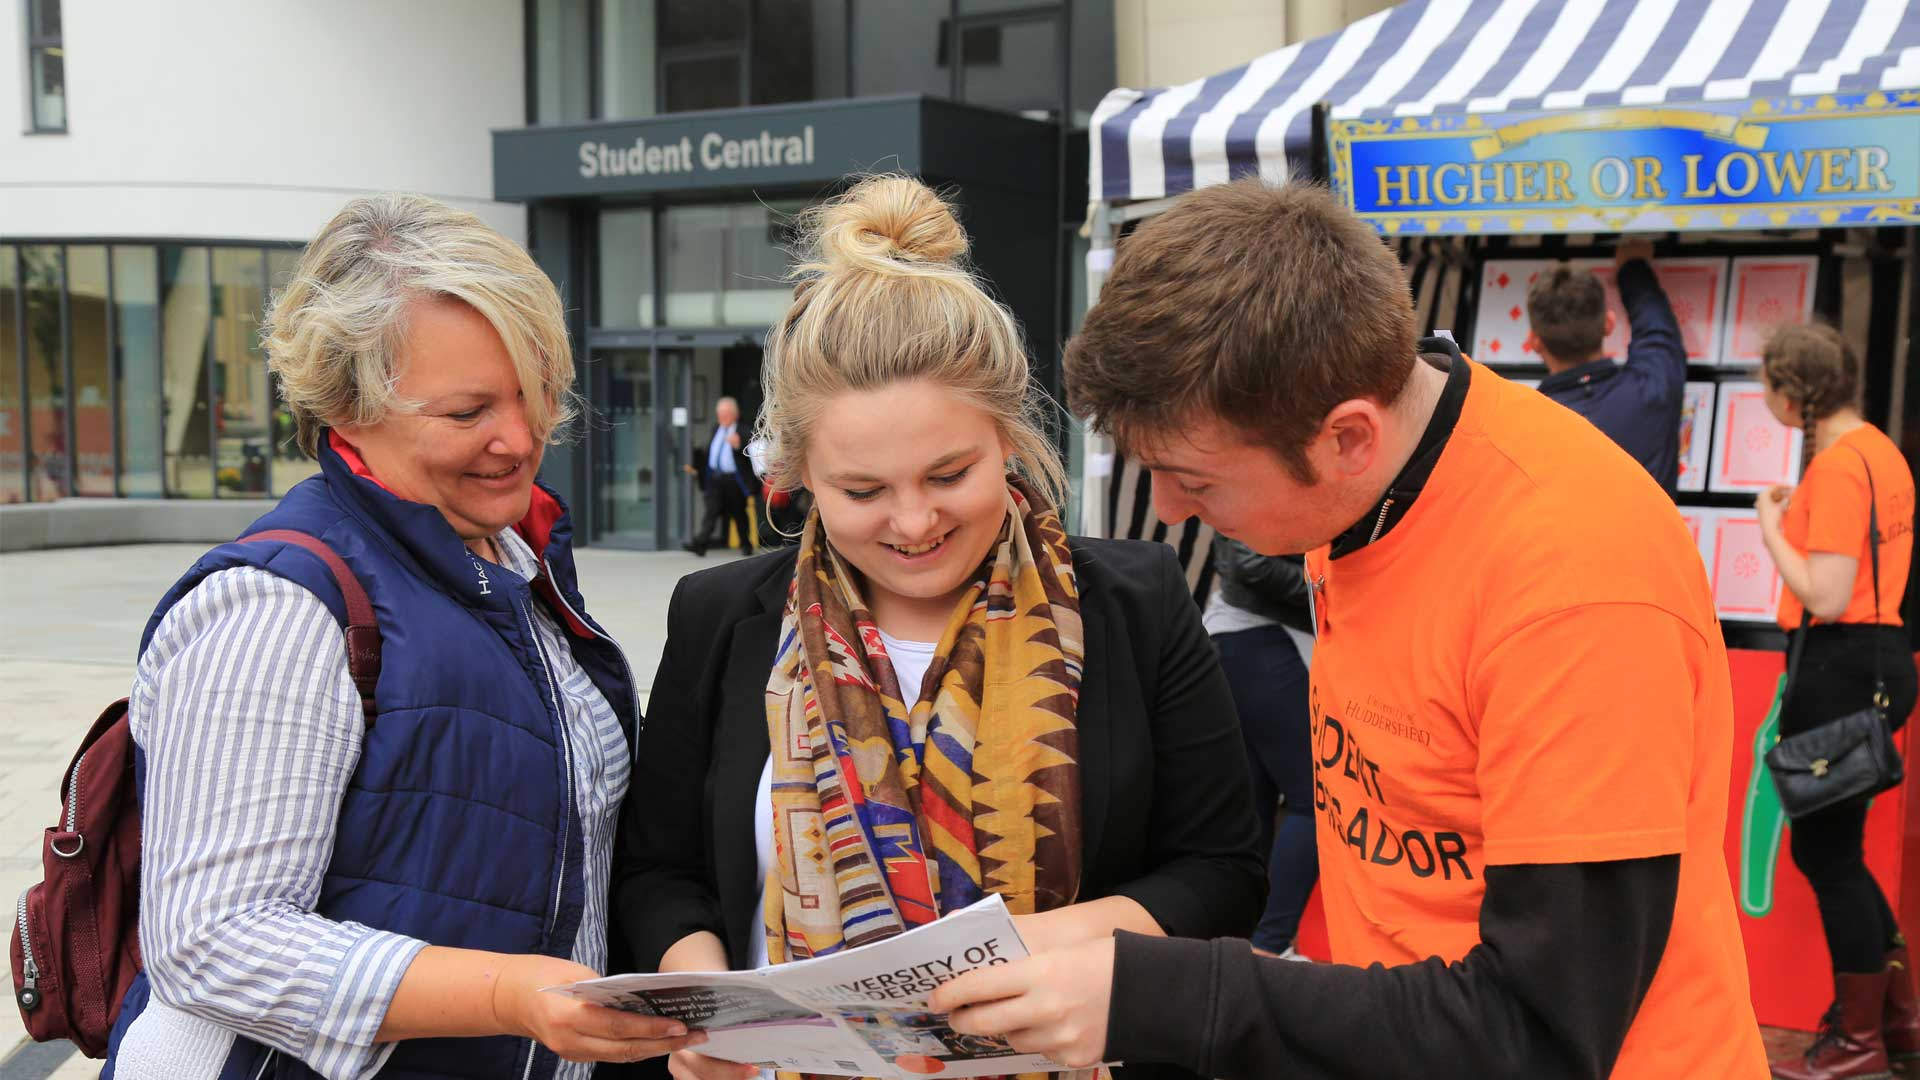 A Student Ambassador helps a parent and potential student look through the open day booklet.